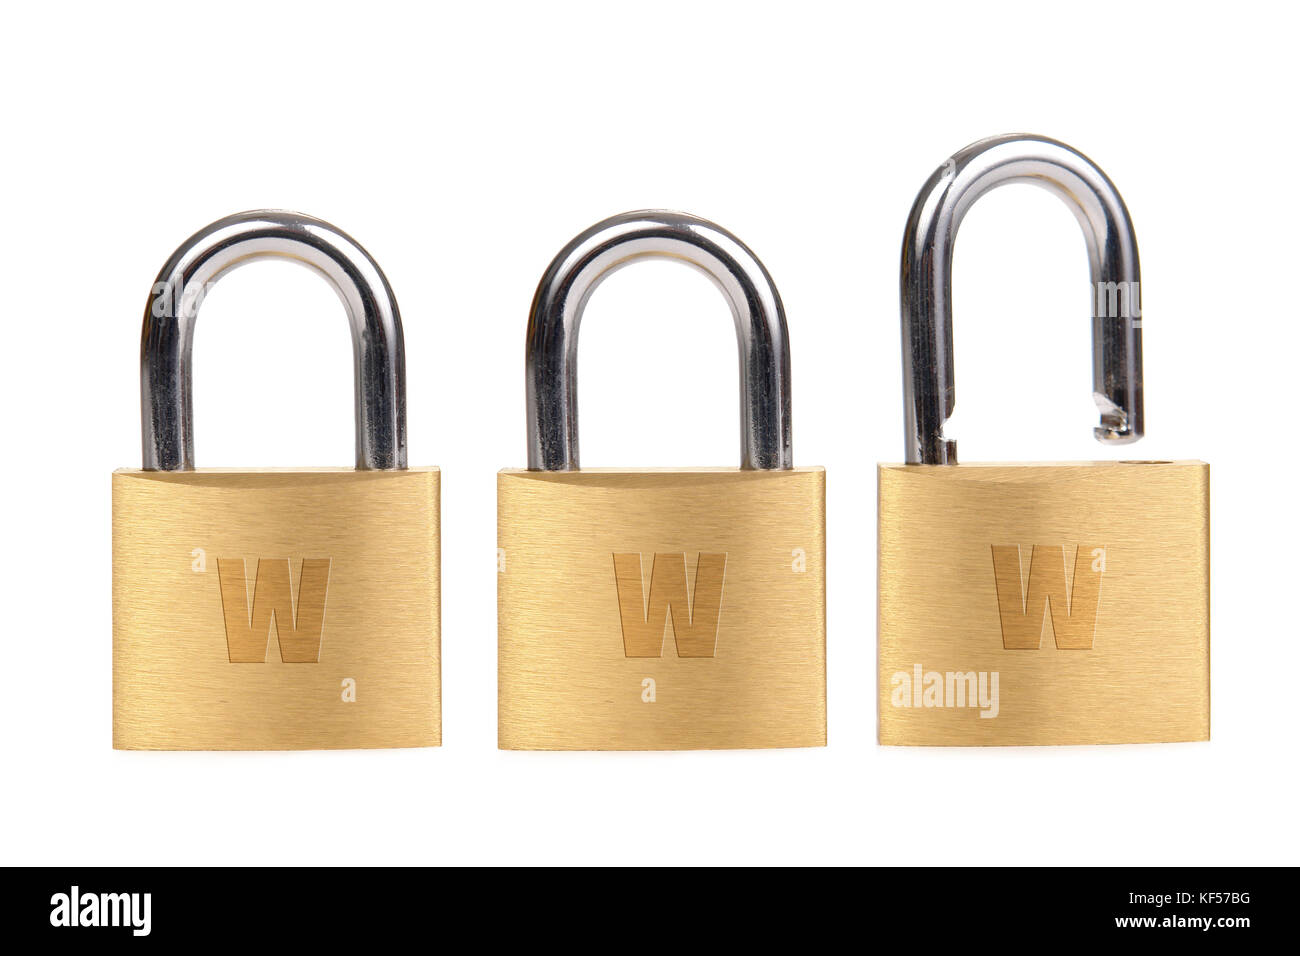 Three golden padlocks - two locked and one unlocked - forming www word over white background - internet security - Stock Image